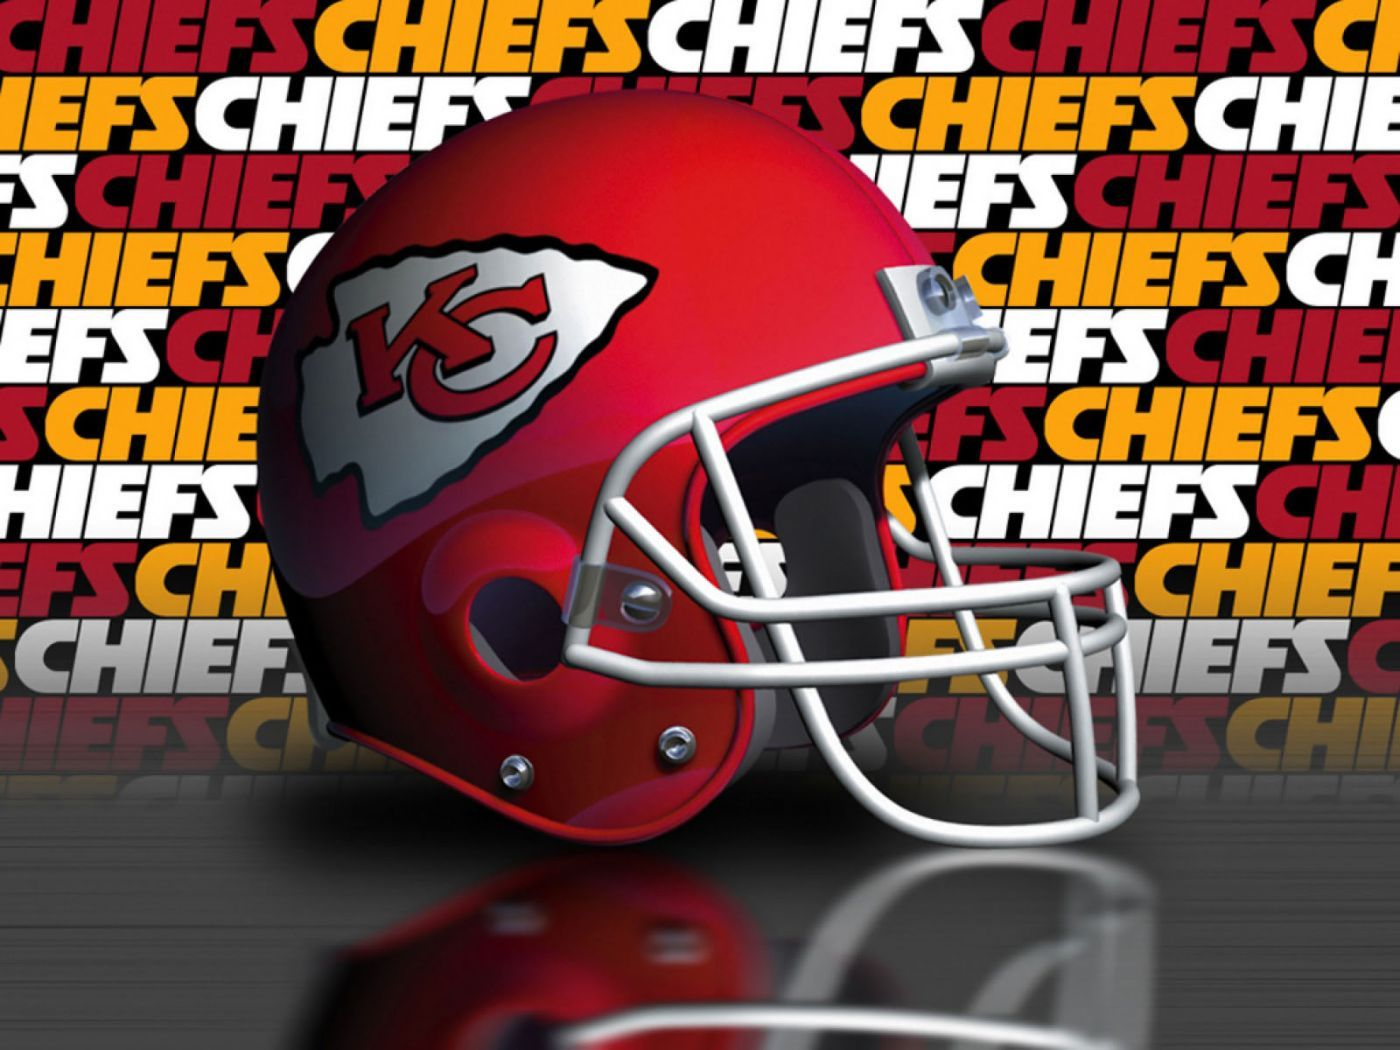 Kansas City Chiefs Helmet Wallpaper 1400 1050 Nfl Wallpapers Kansas City Chiefs Football Chiefs Football Kansas City Chiefs